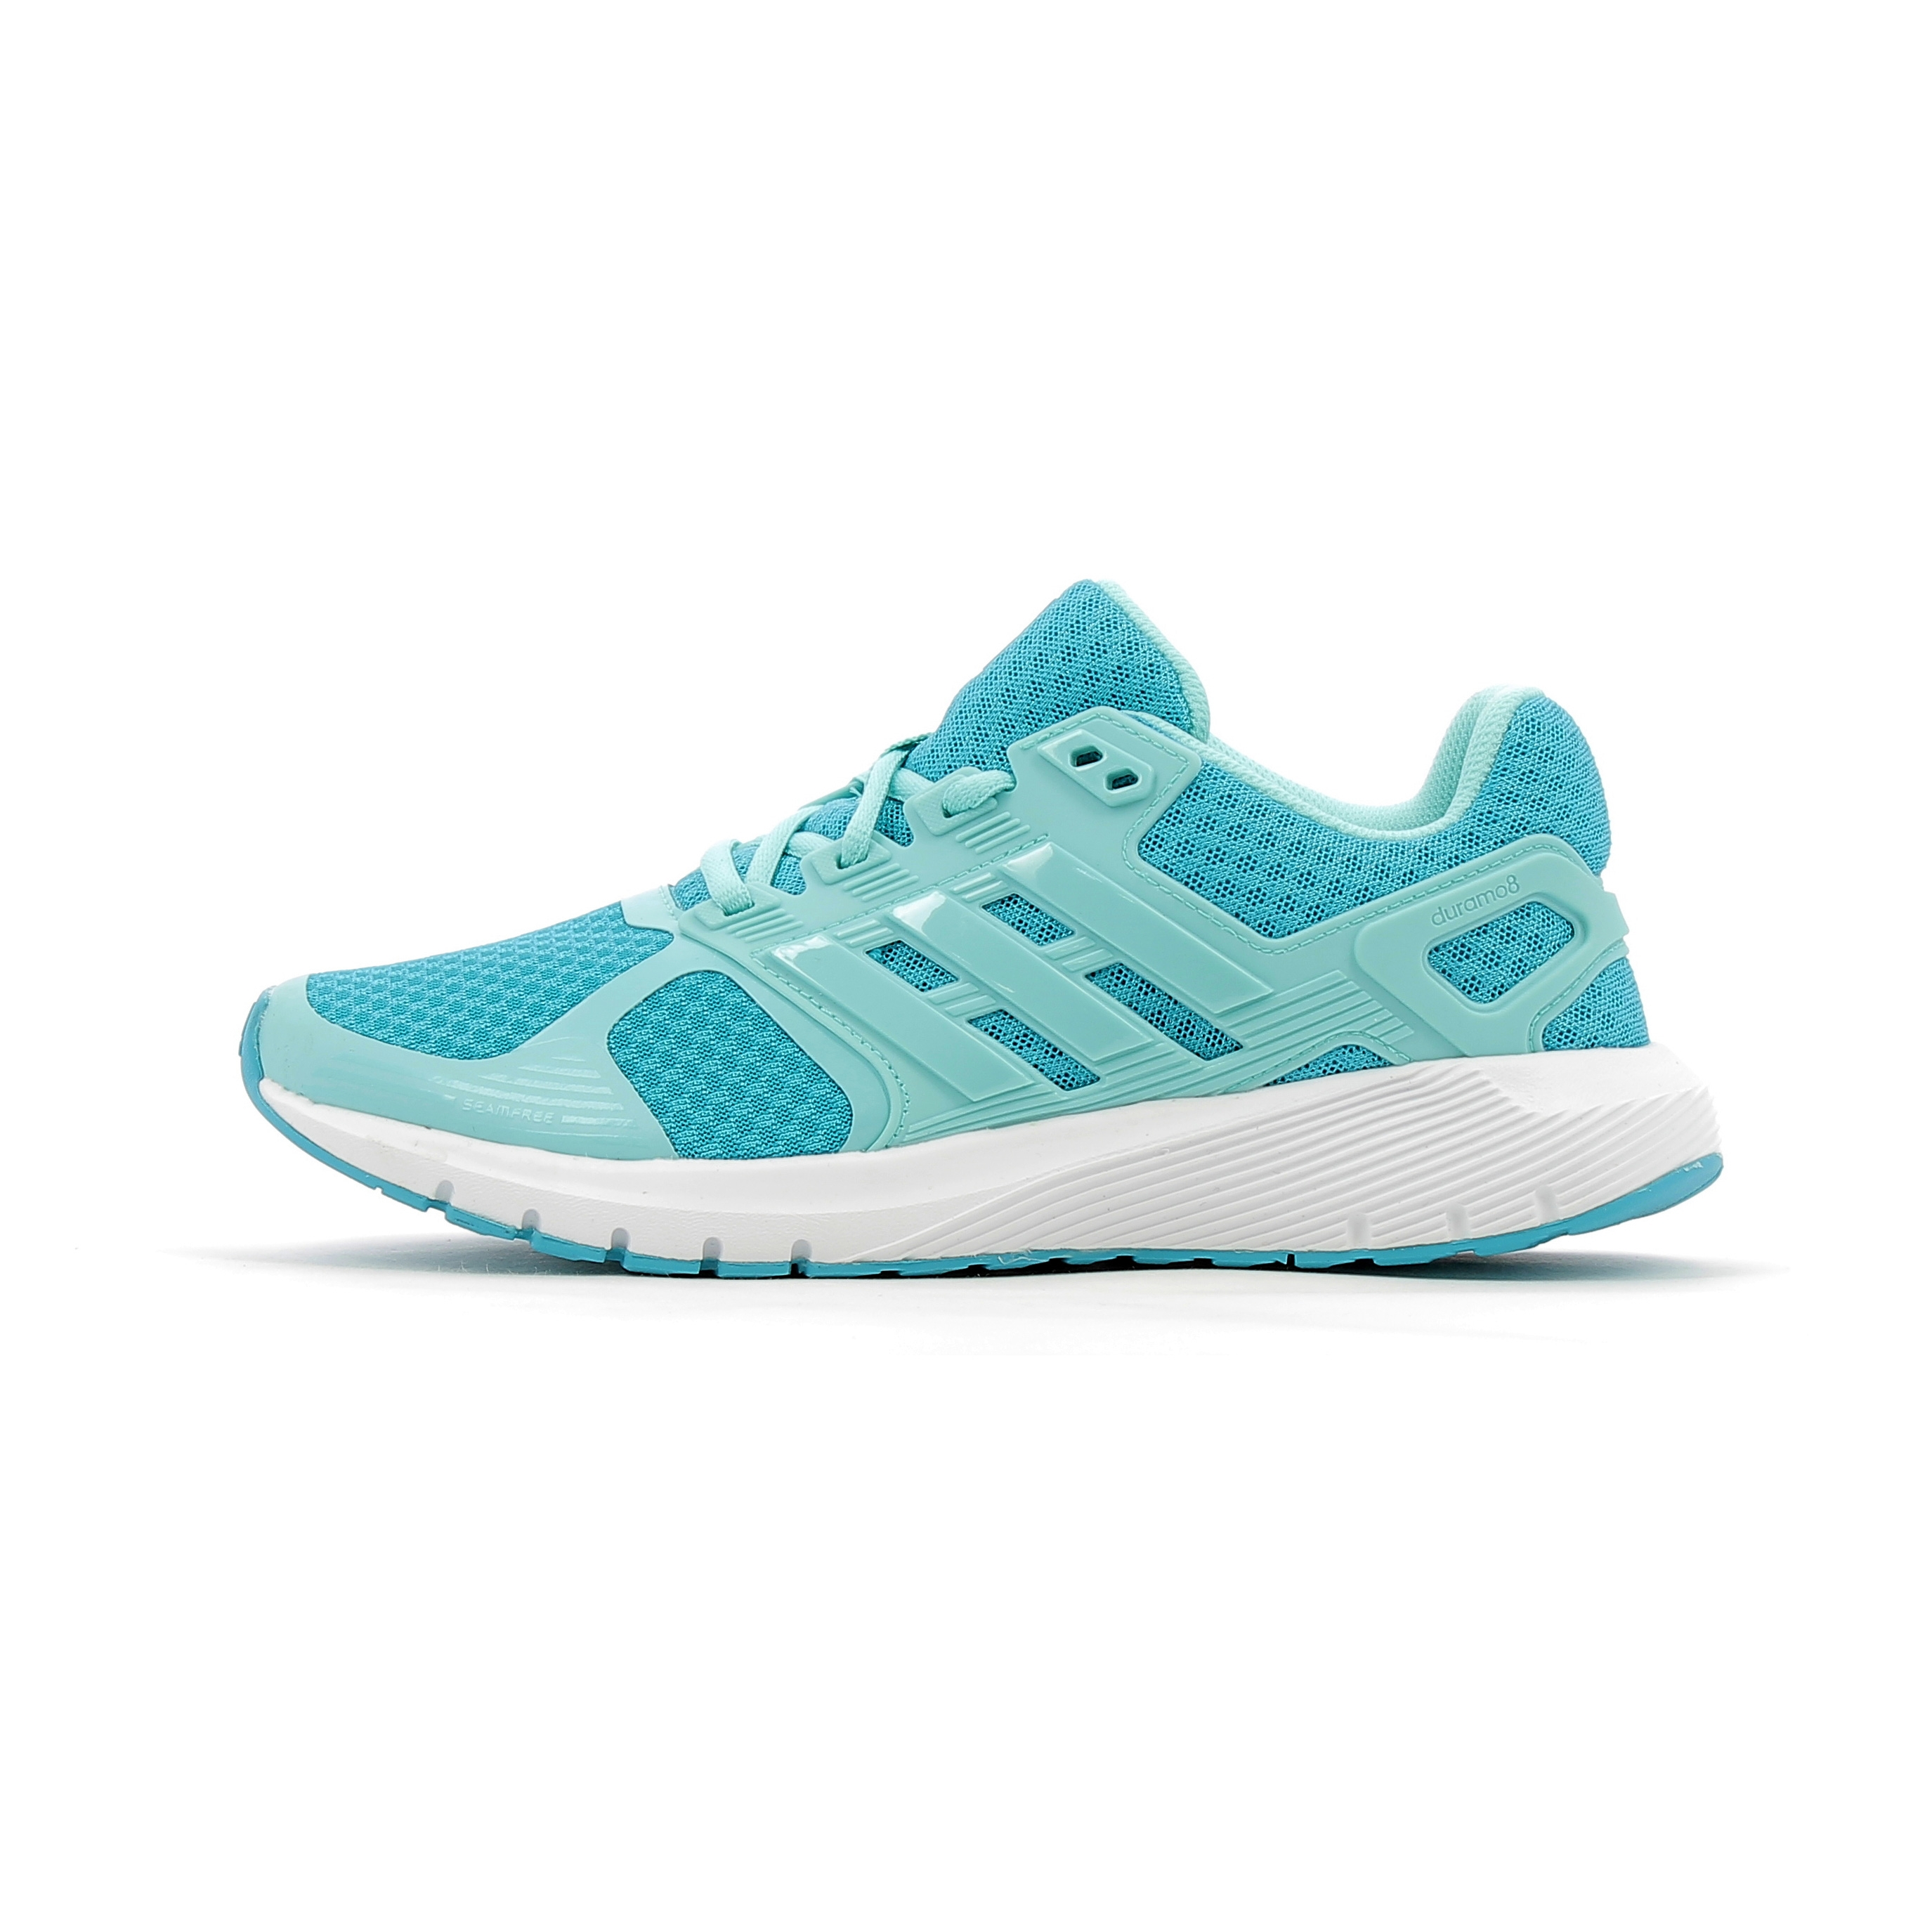 competitive price 40455 44682 Chaussures Enfant adidas running Duramo 8 Kid Bleu